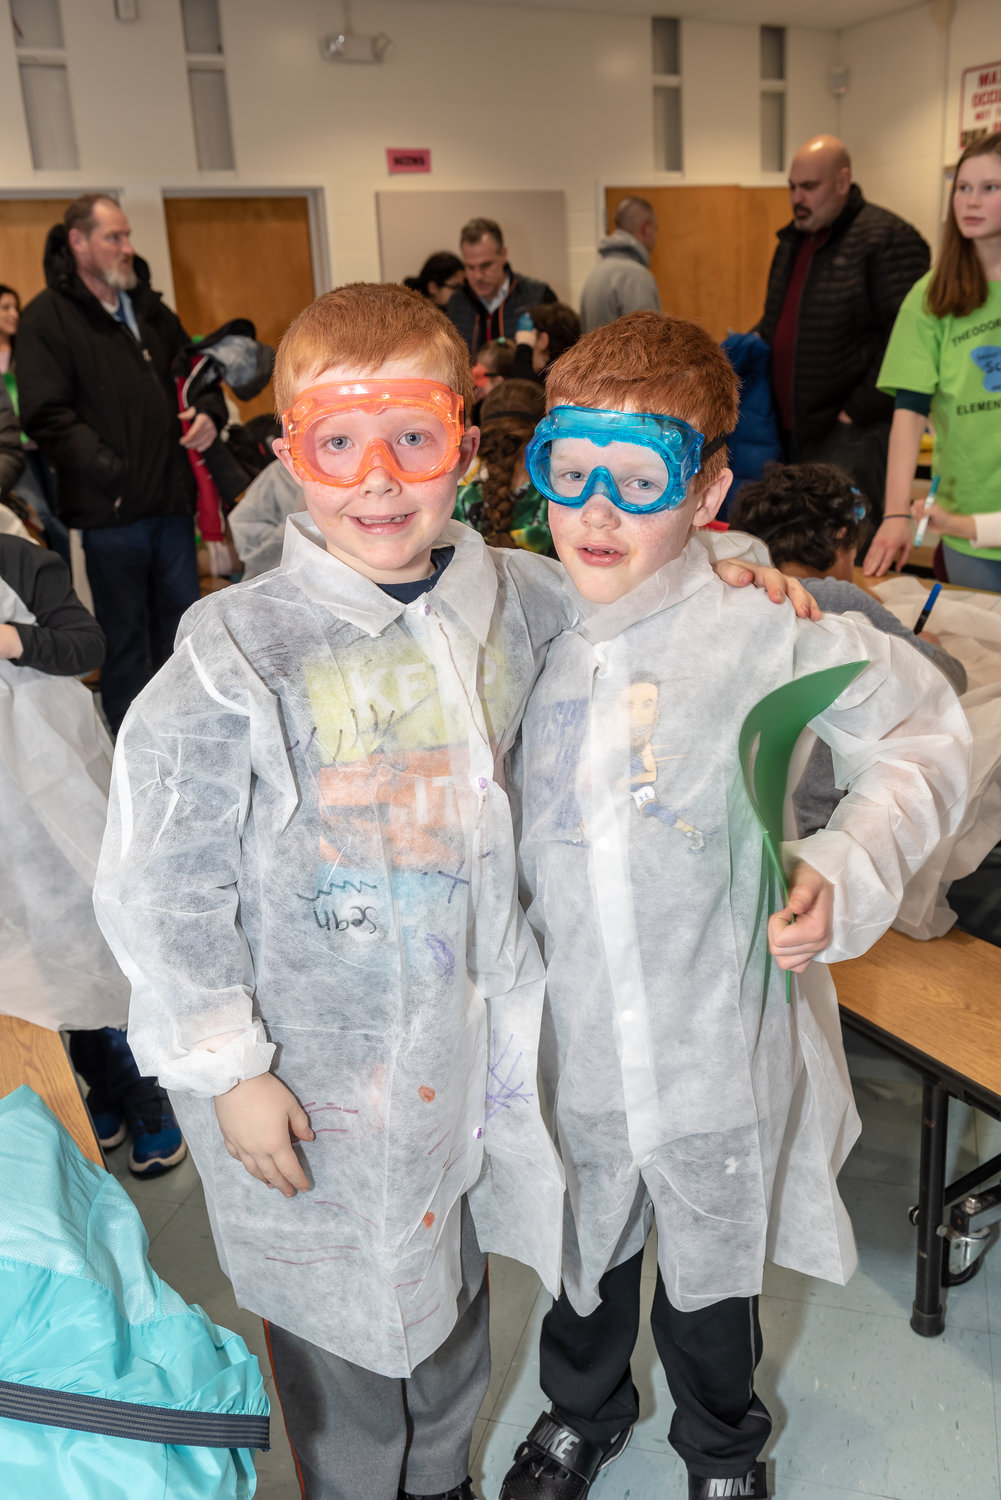 Twins Sean and Colin Werner were ready to learn all about science at Theodore Roosevelt Elementary School's Science Fun Night.